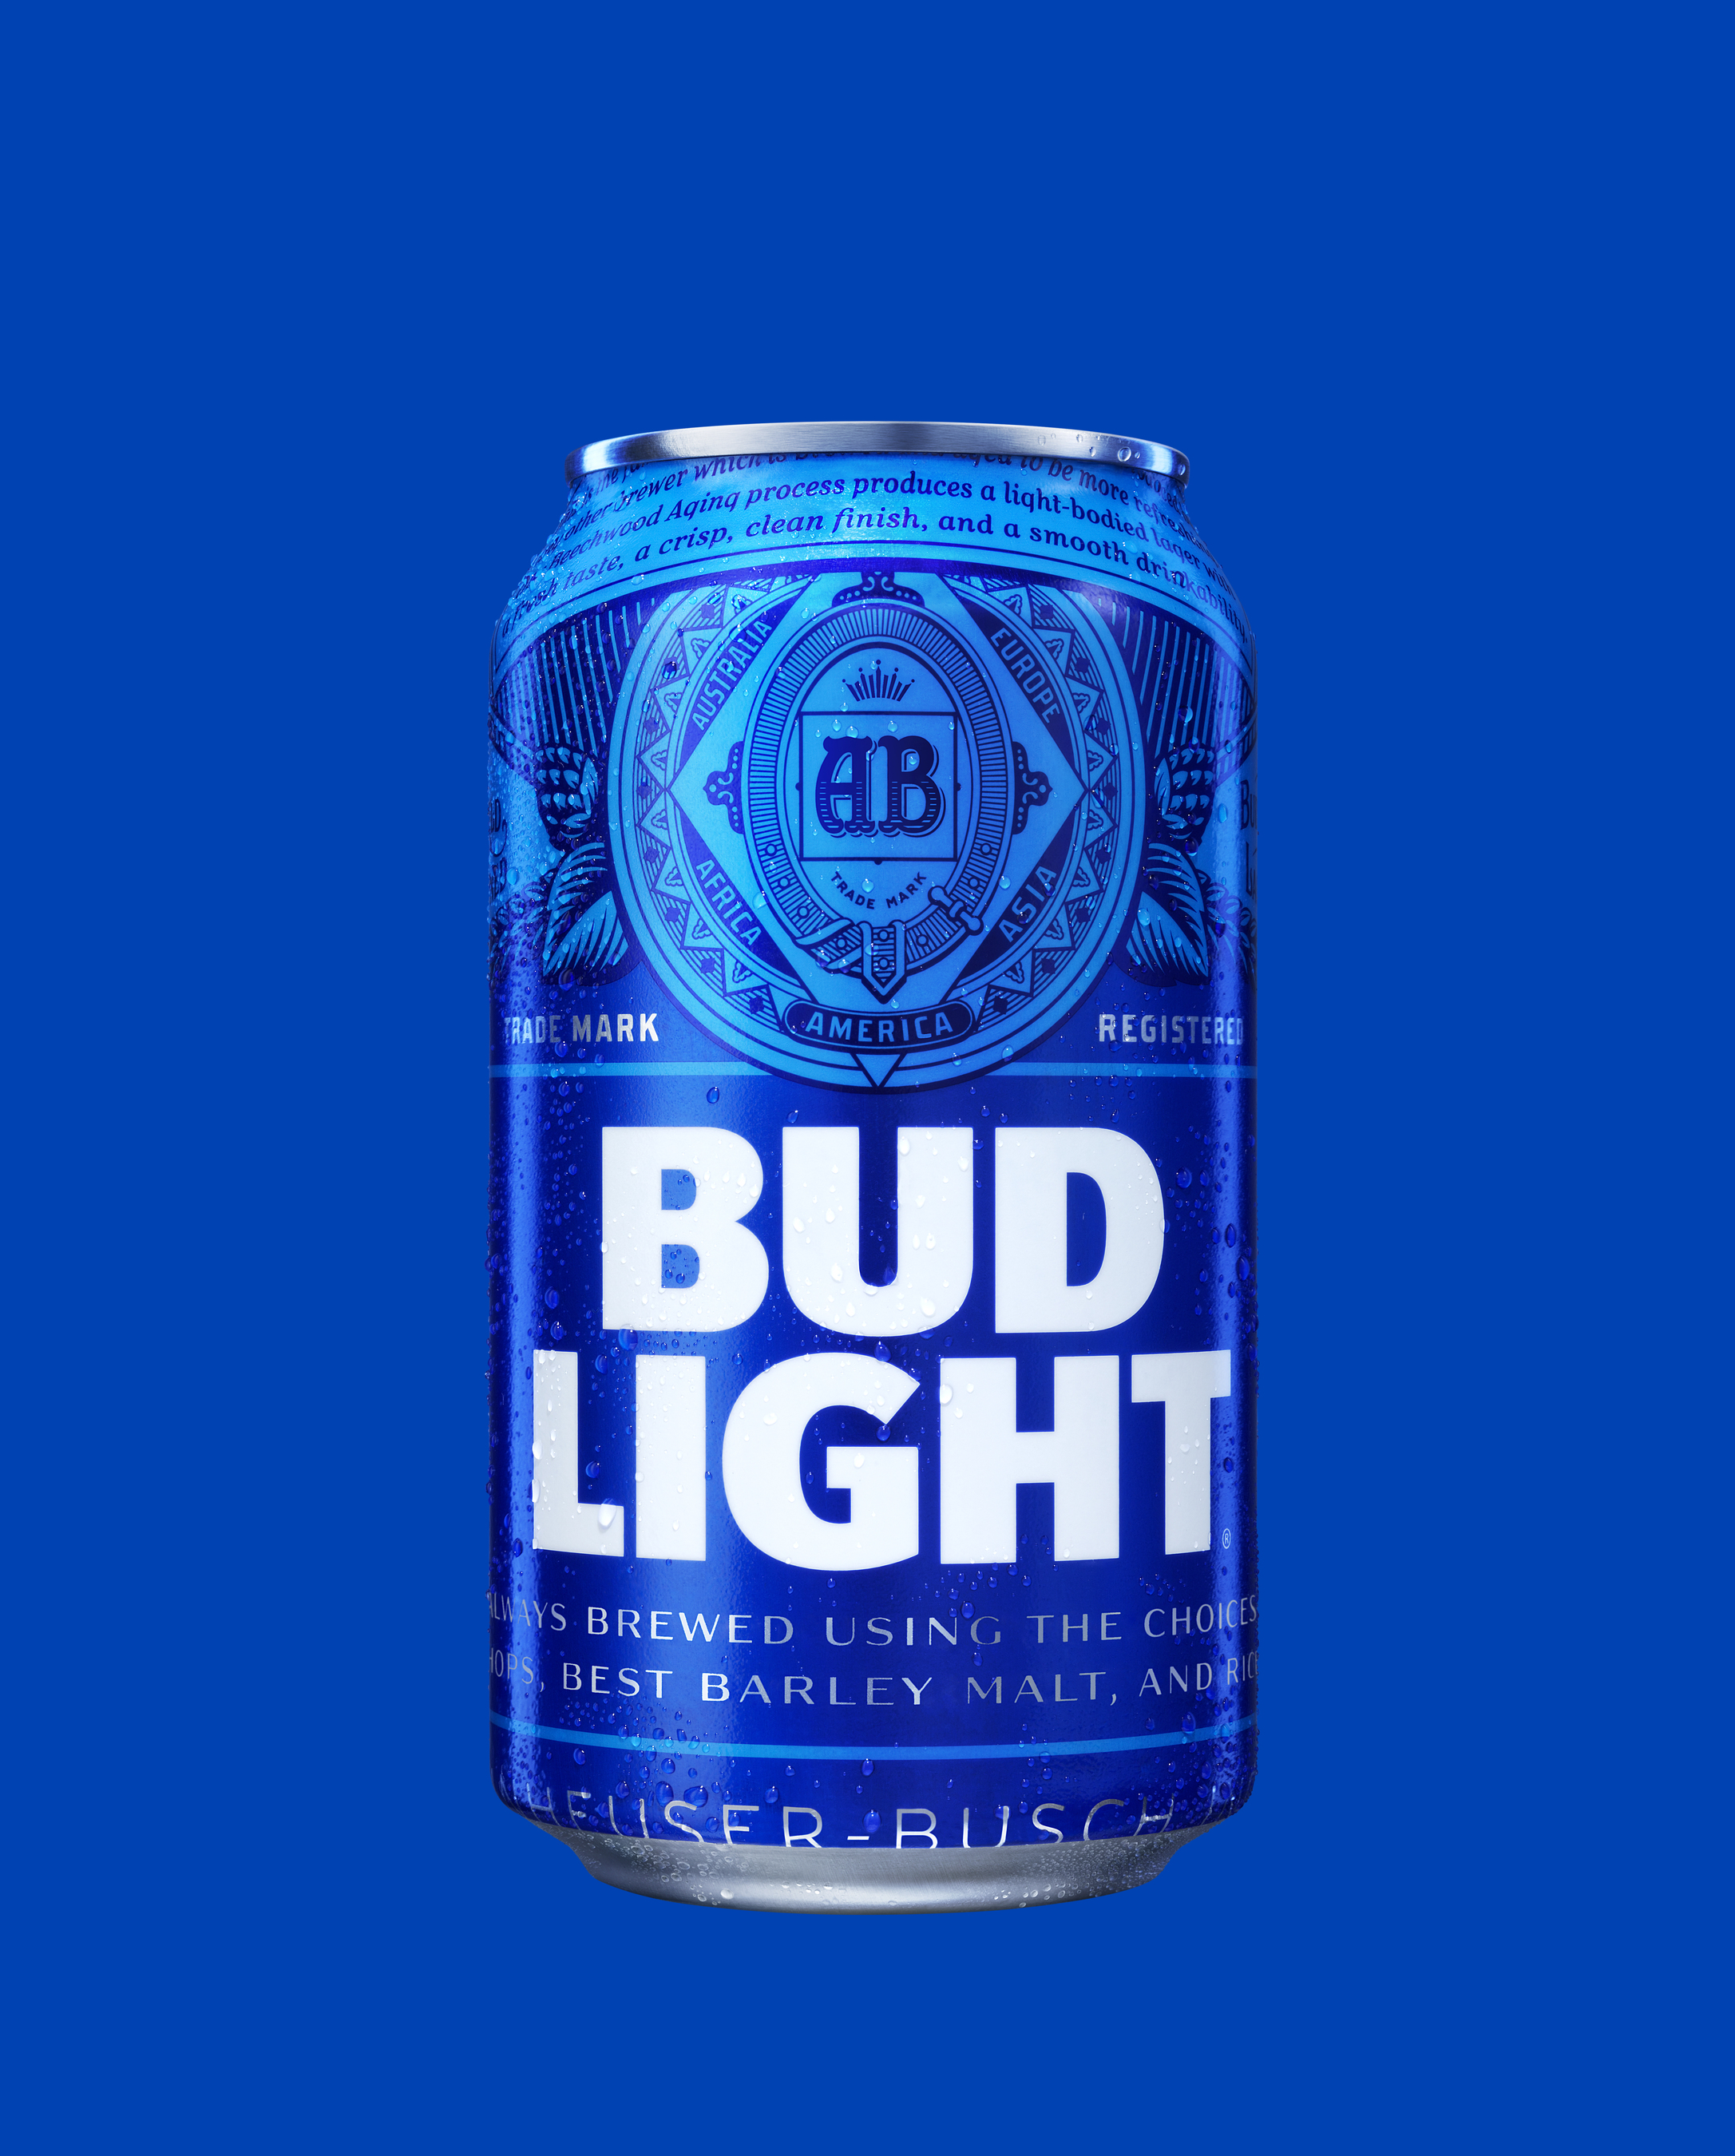 Bud Light's Newly Designed Aluminum Can